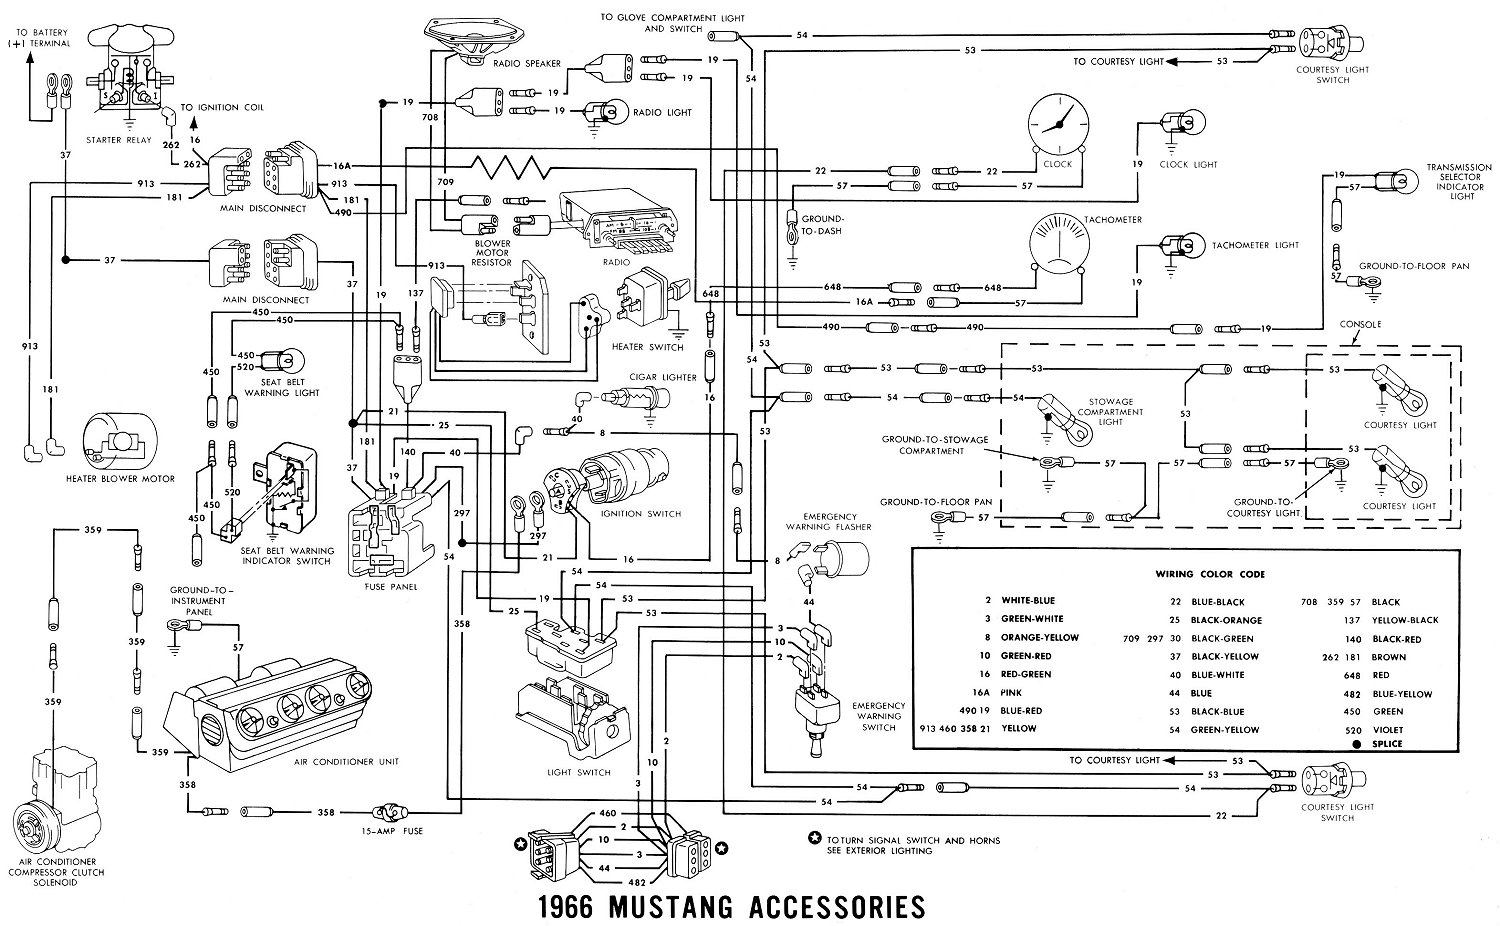 Ford Radio Wiring Diagram Internal 1966 Mustang Diagrams Average Joe Restoration Schematic